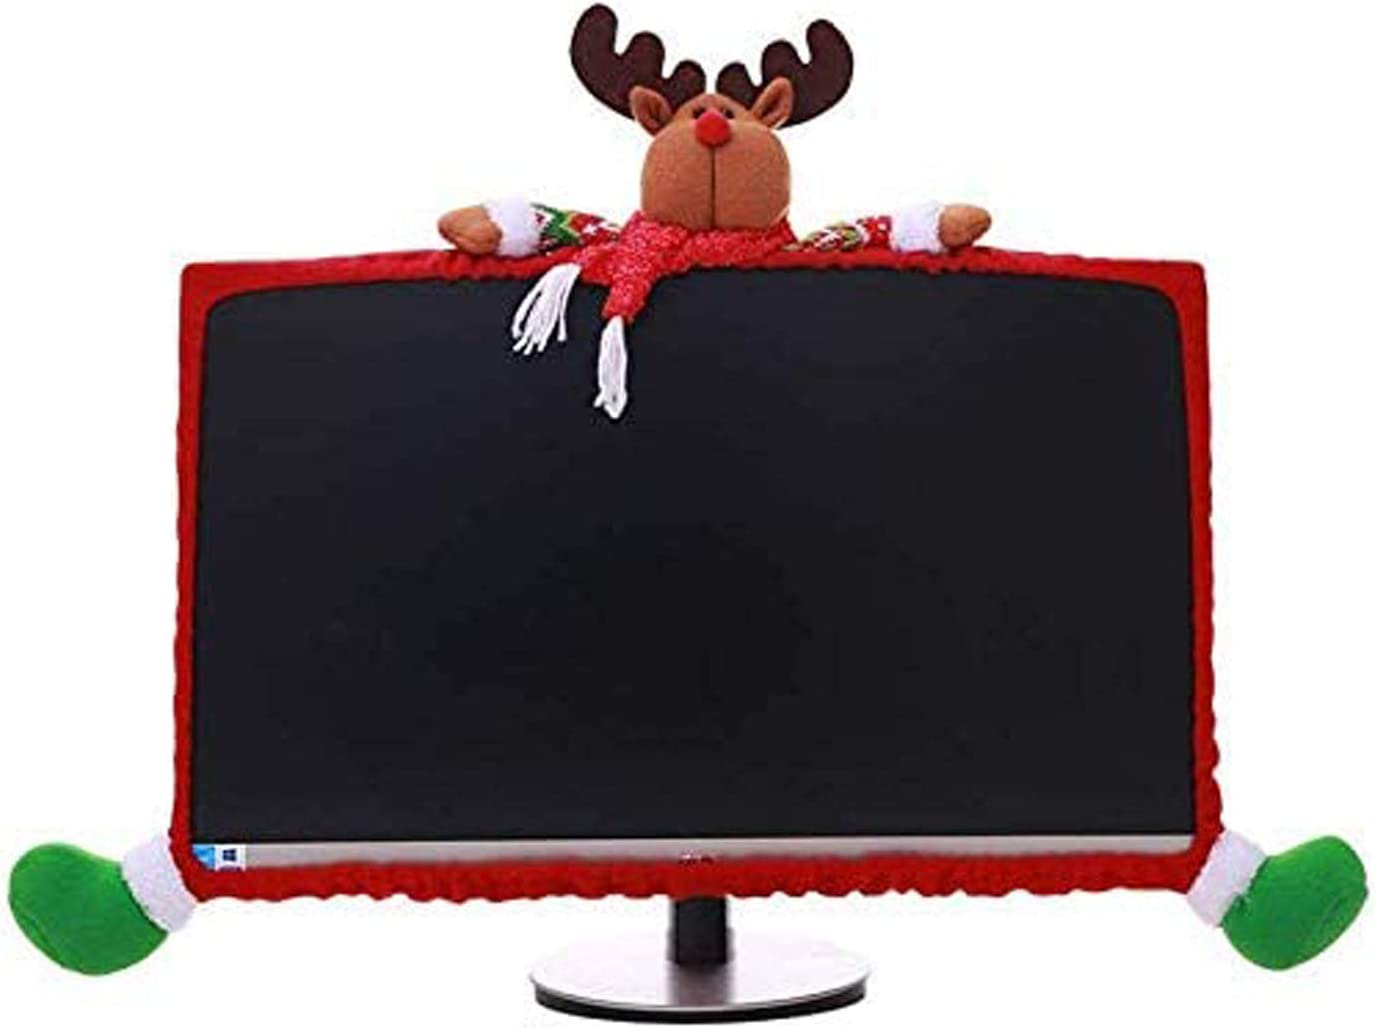 Gugou Computer Monitor Cover, Elastic Computer Cover Christmas Decorations for Home Office Decor and New Year Gift Ideas (Moose)